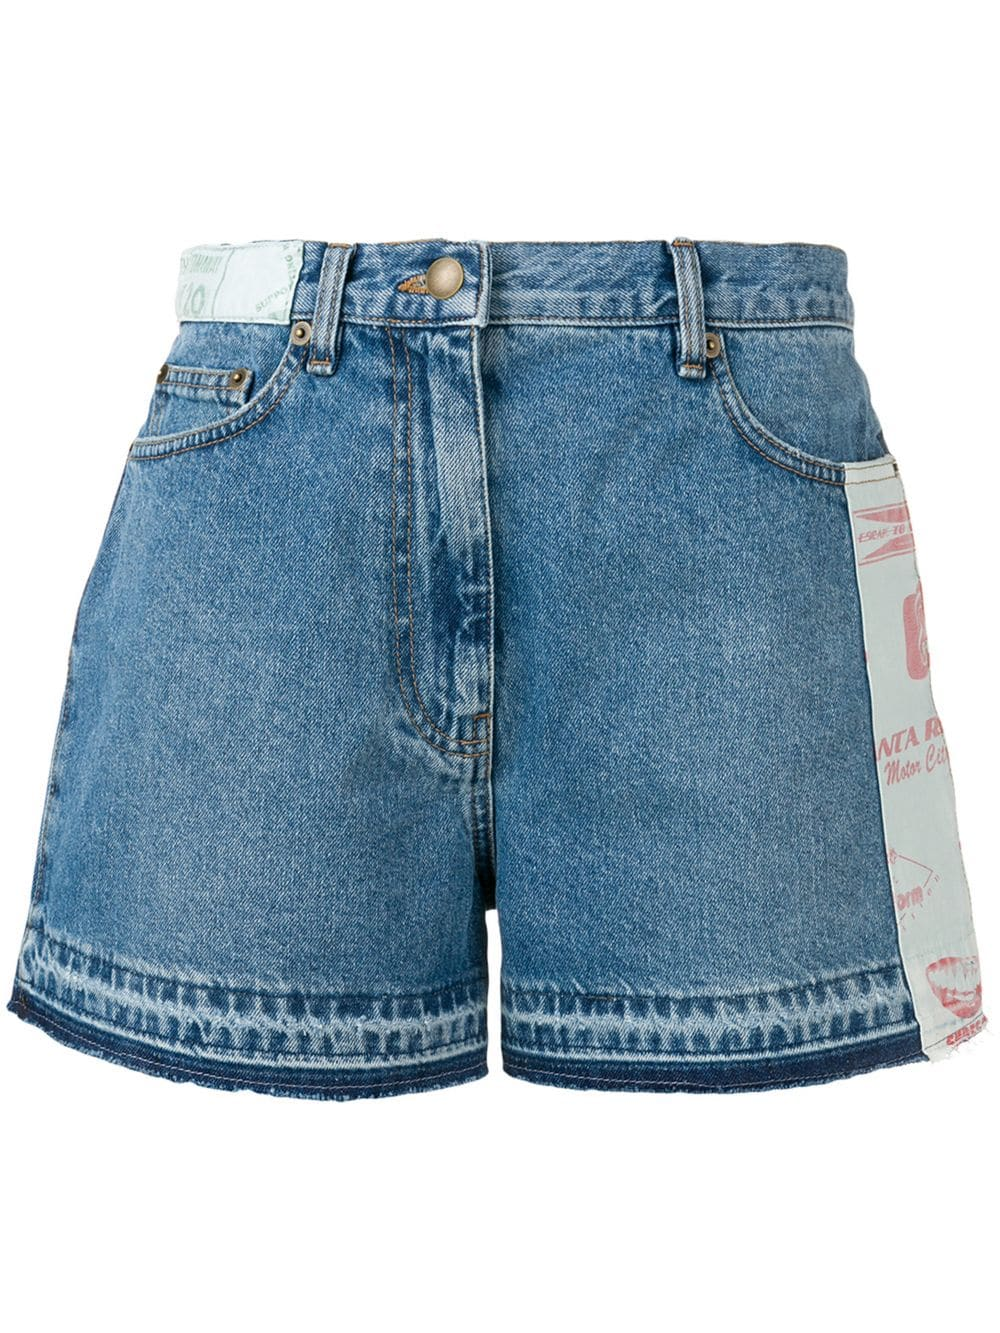 bf7ec35dffa Denim Jean Shorts In Every Style To Wear This Summer